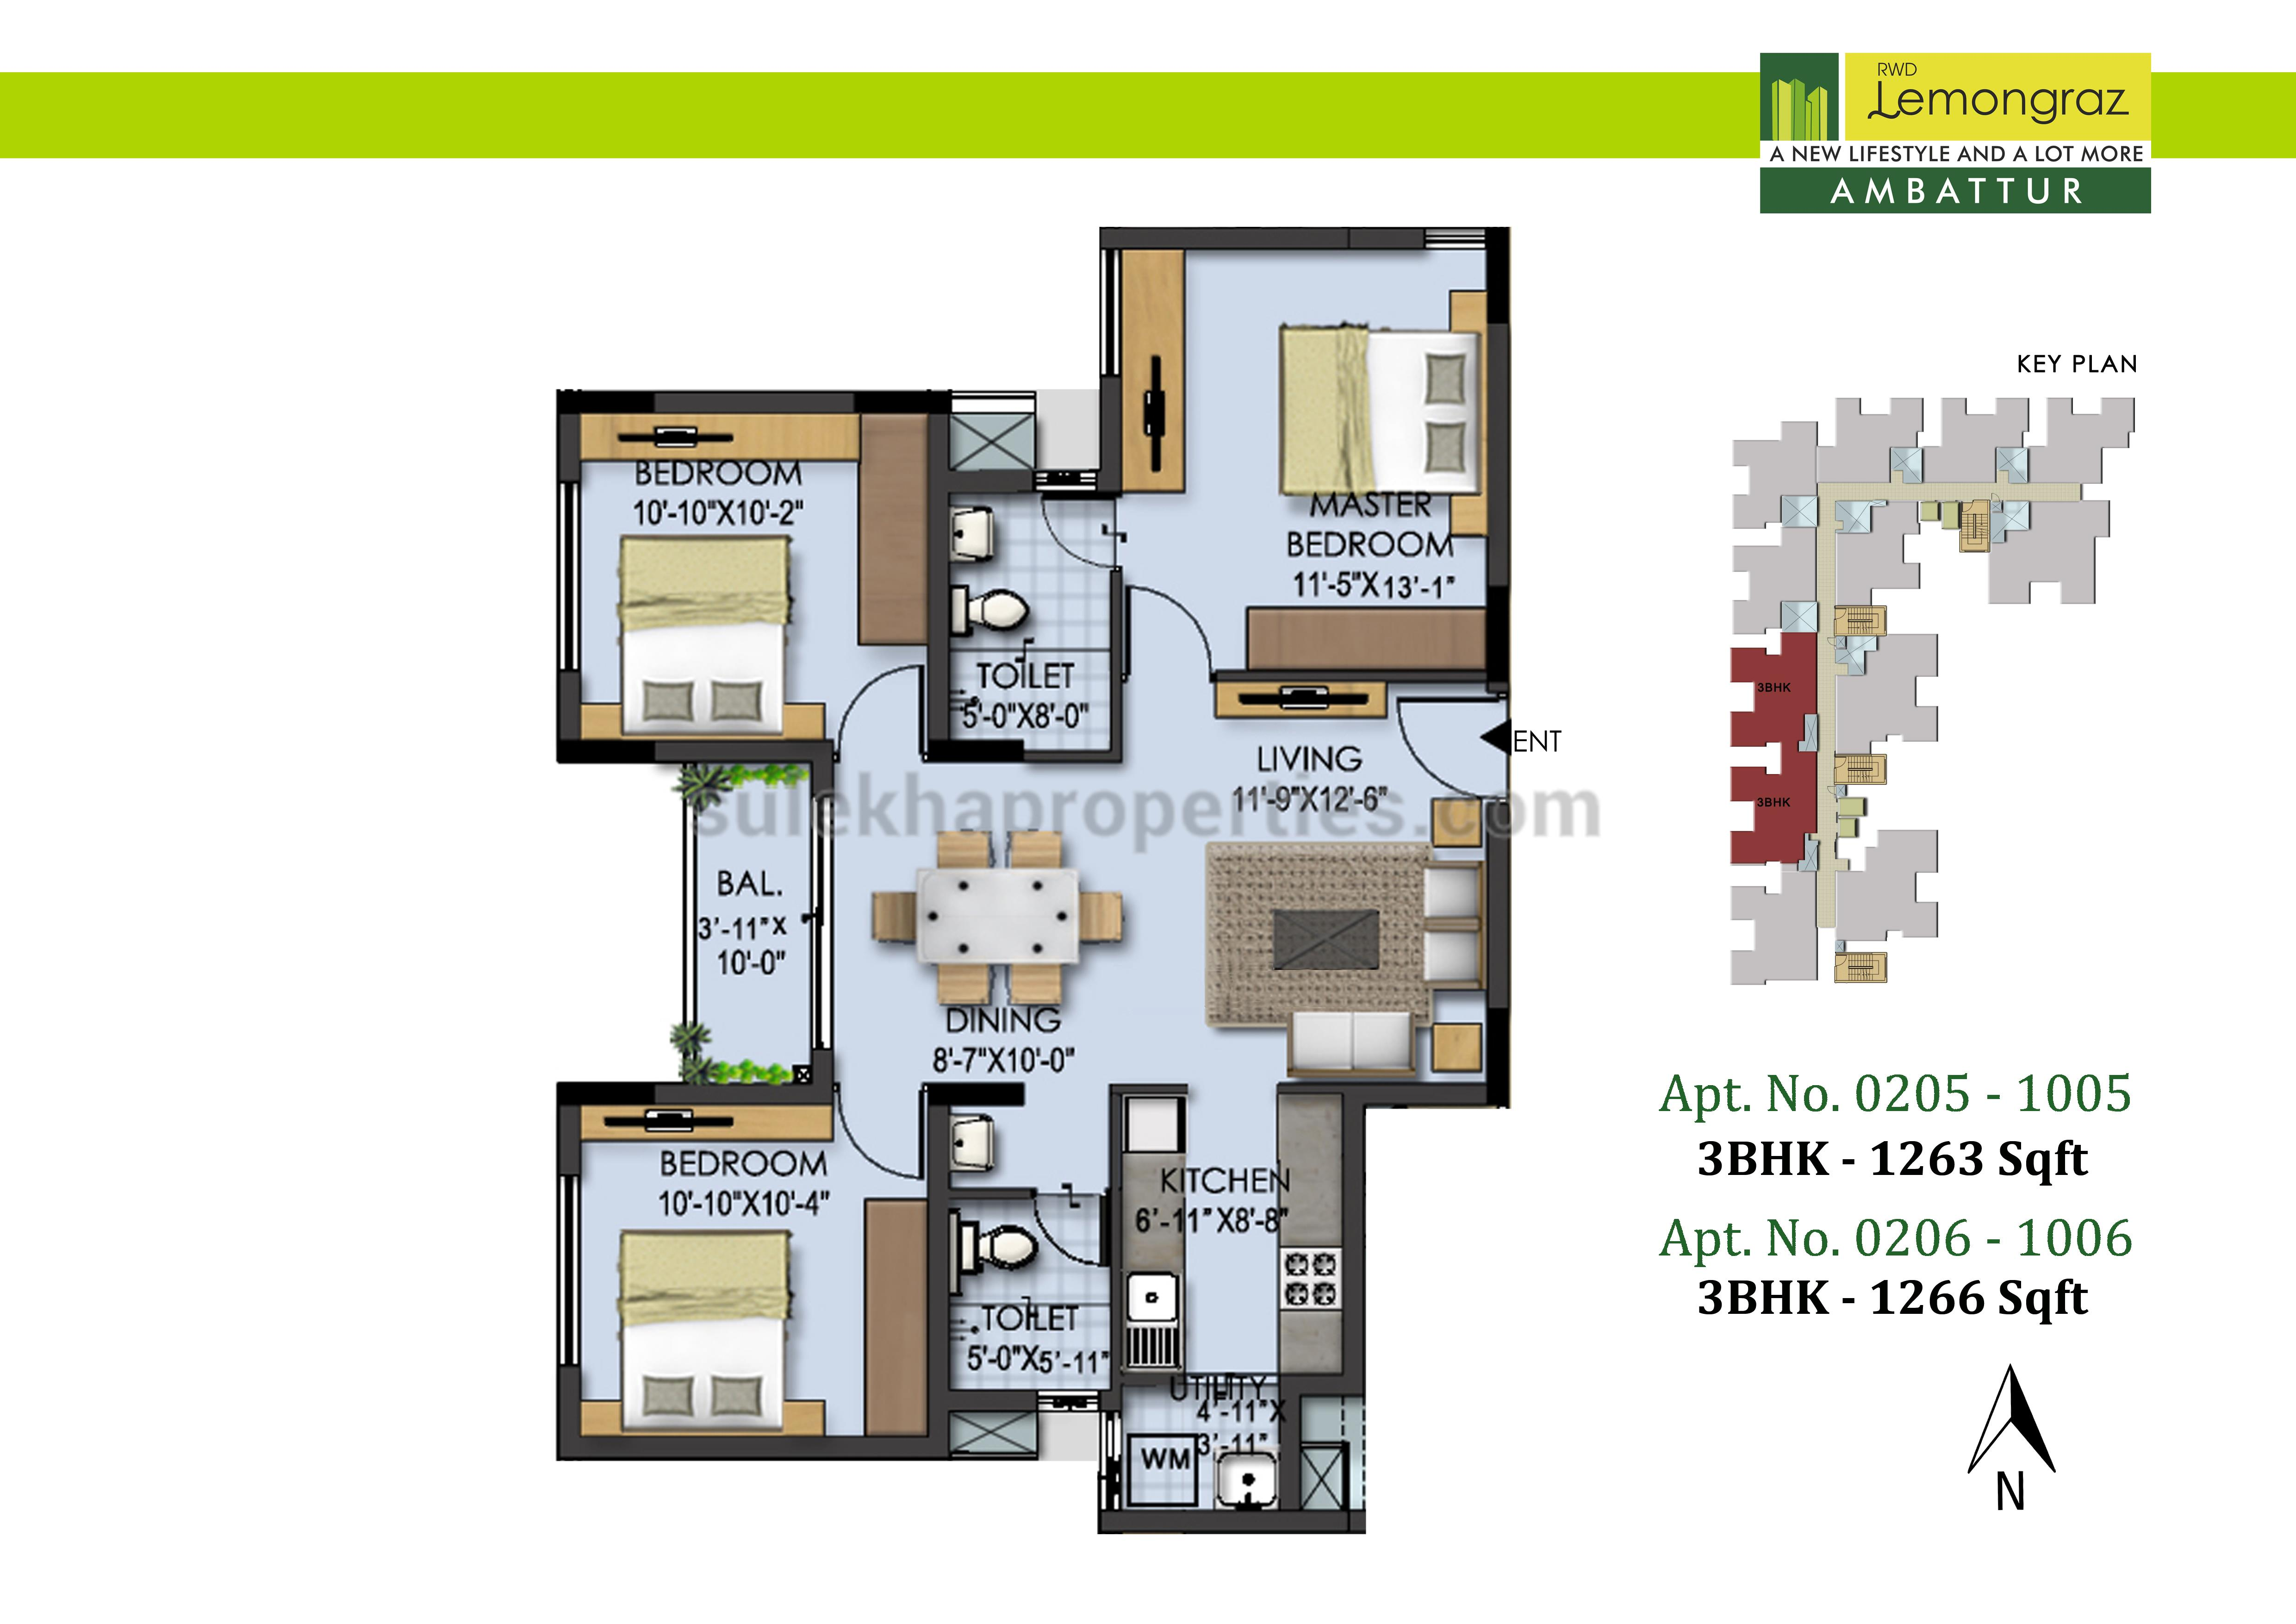 Rwd lemongraz in ambattur chennai by ramky wavoo for Floor plan source